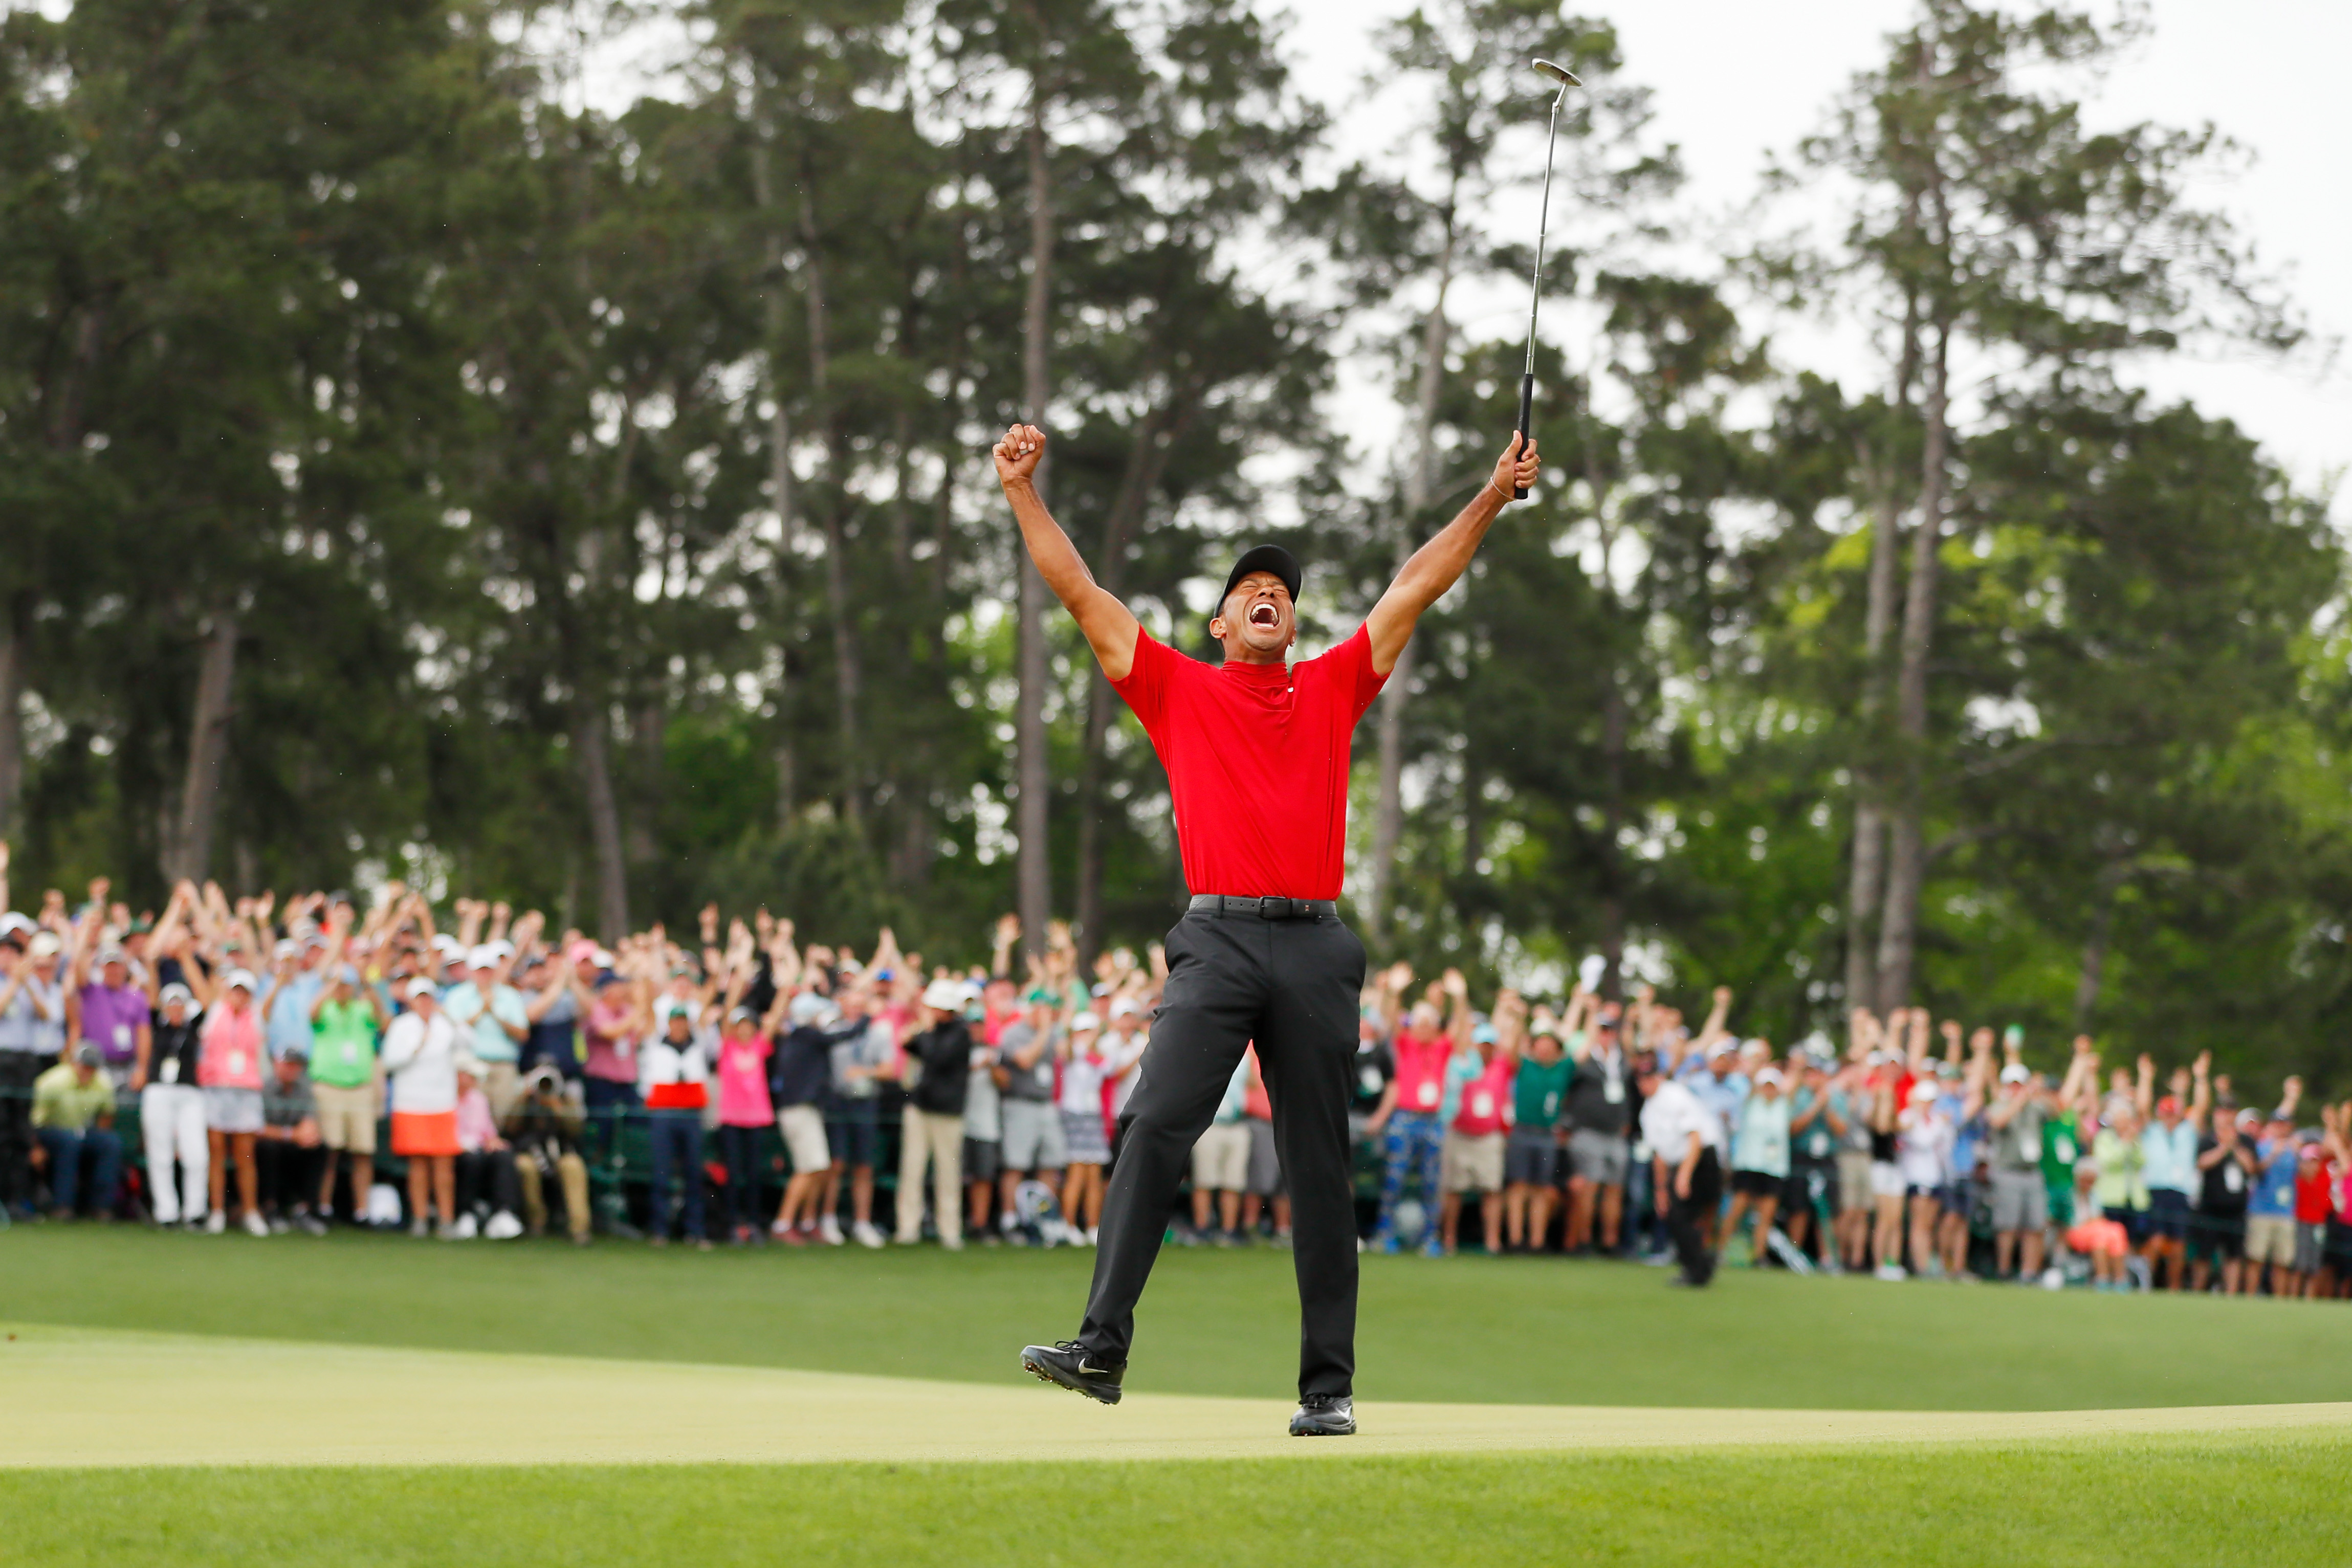 Nike celebrates Tiger Woods' Masters win with a new ad